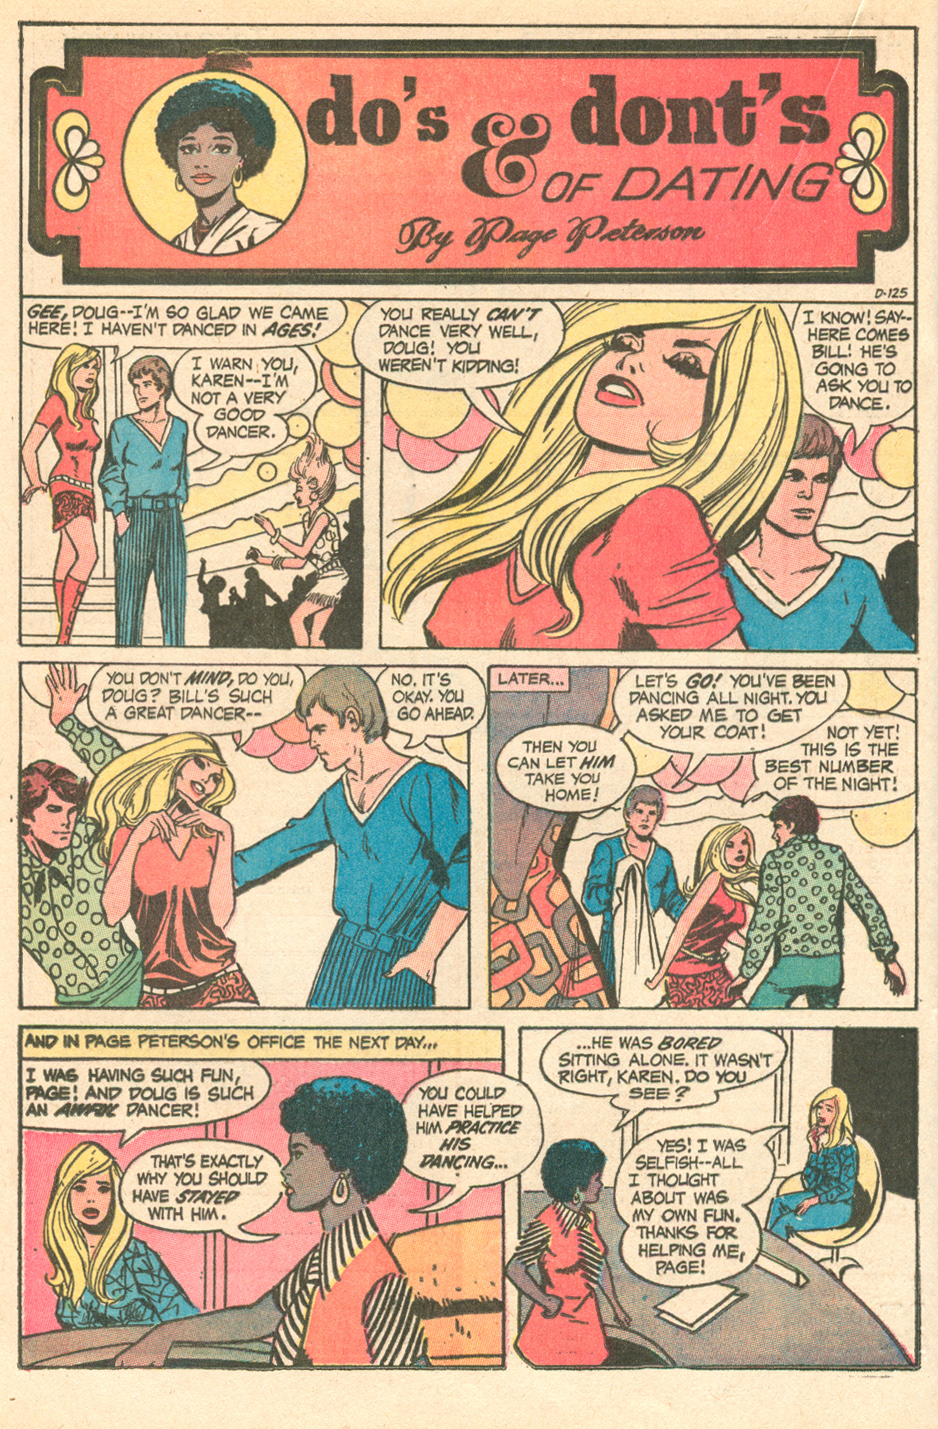 """Do's & Dont's of Dating by Page Peterson"" Pencils: Steve Englehart, Inks: Vince Colletta Young Romance #174 (September 1971)"